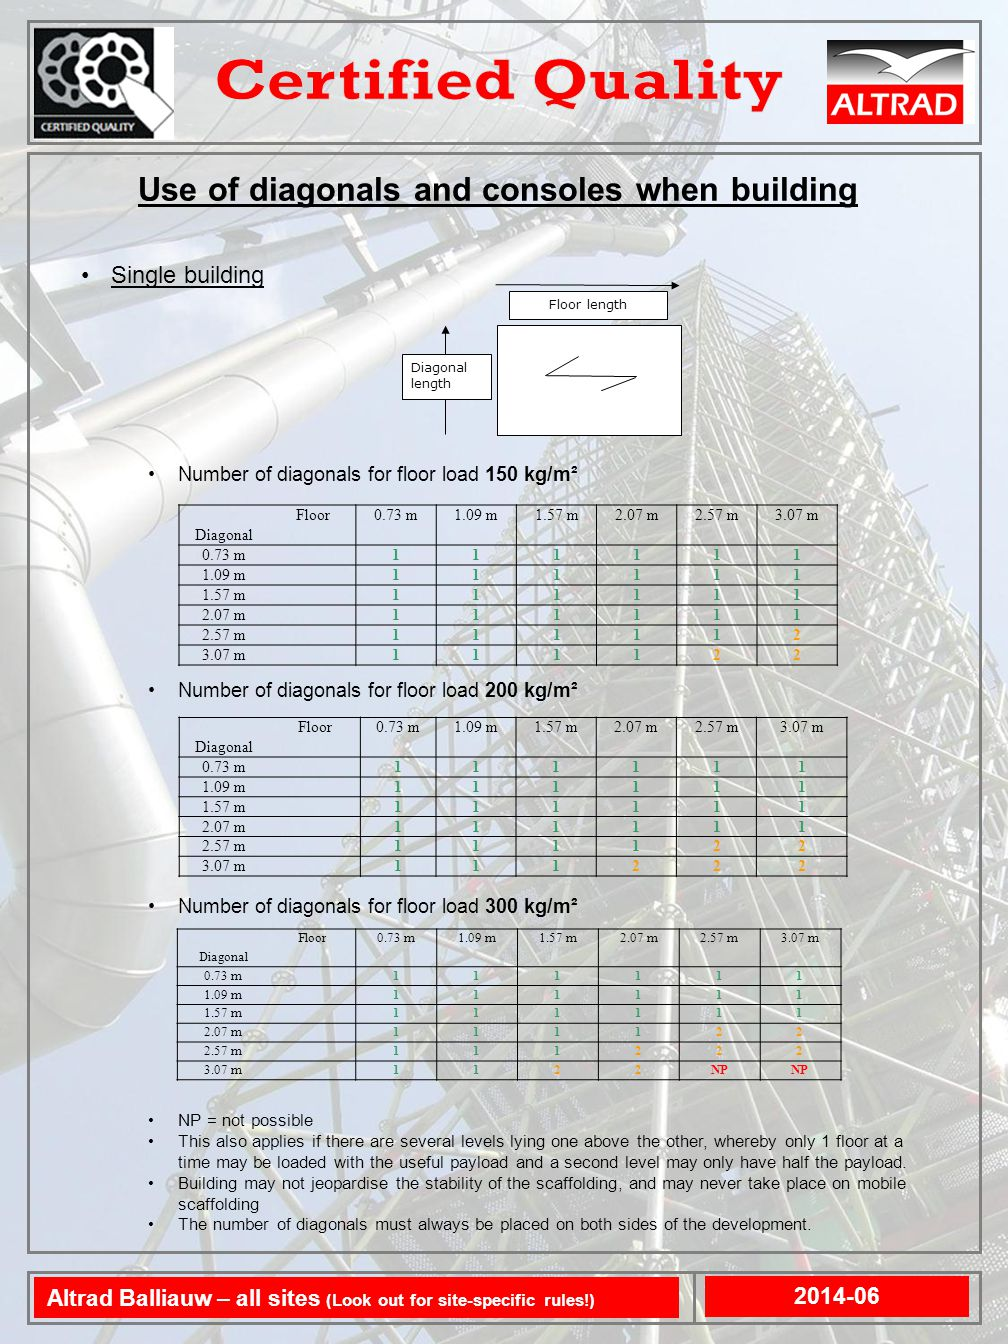 Use of diagonals and consoles when building 2014-06 Altrad Balliauw – all sites (Look out for site-specific rules!) Floor length Diagonal length Single building Number of diagonals for floor load 150 kg/m² Number of diagonals for floor load 200 kg/m² Number of diagonals for floor load 300 kg/m² NP = not possible This also applies if there are several levels lying one above the other, whereby only 1 floor at a time may be loaded with the useful payload and a second level may only have half the payload.